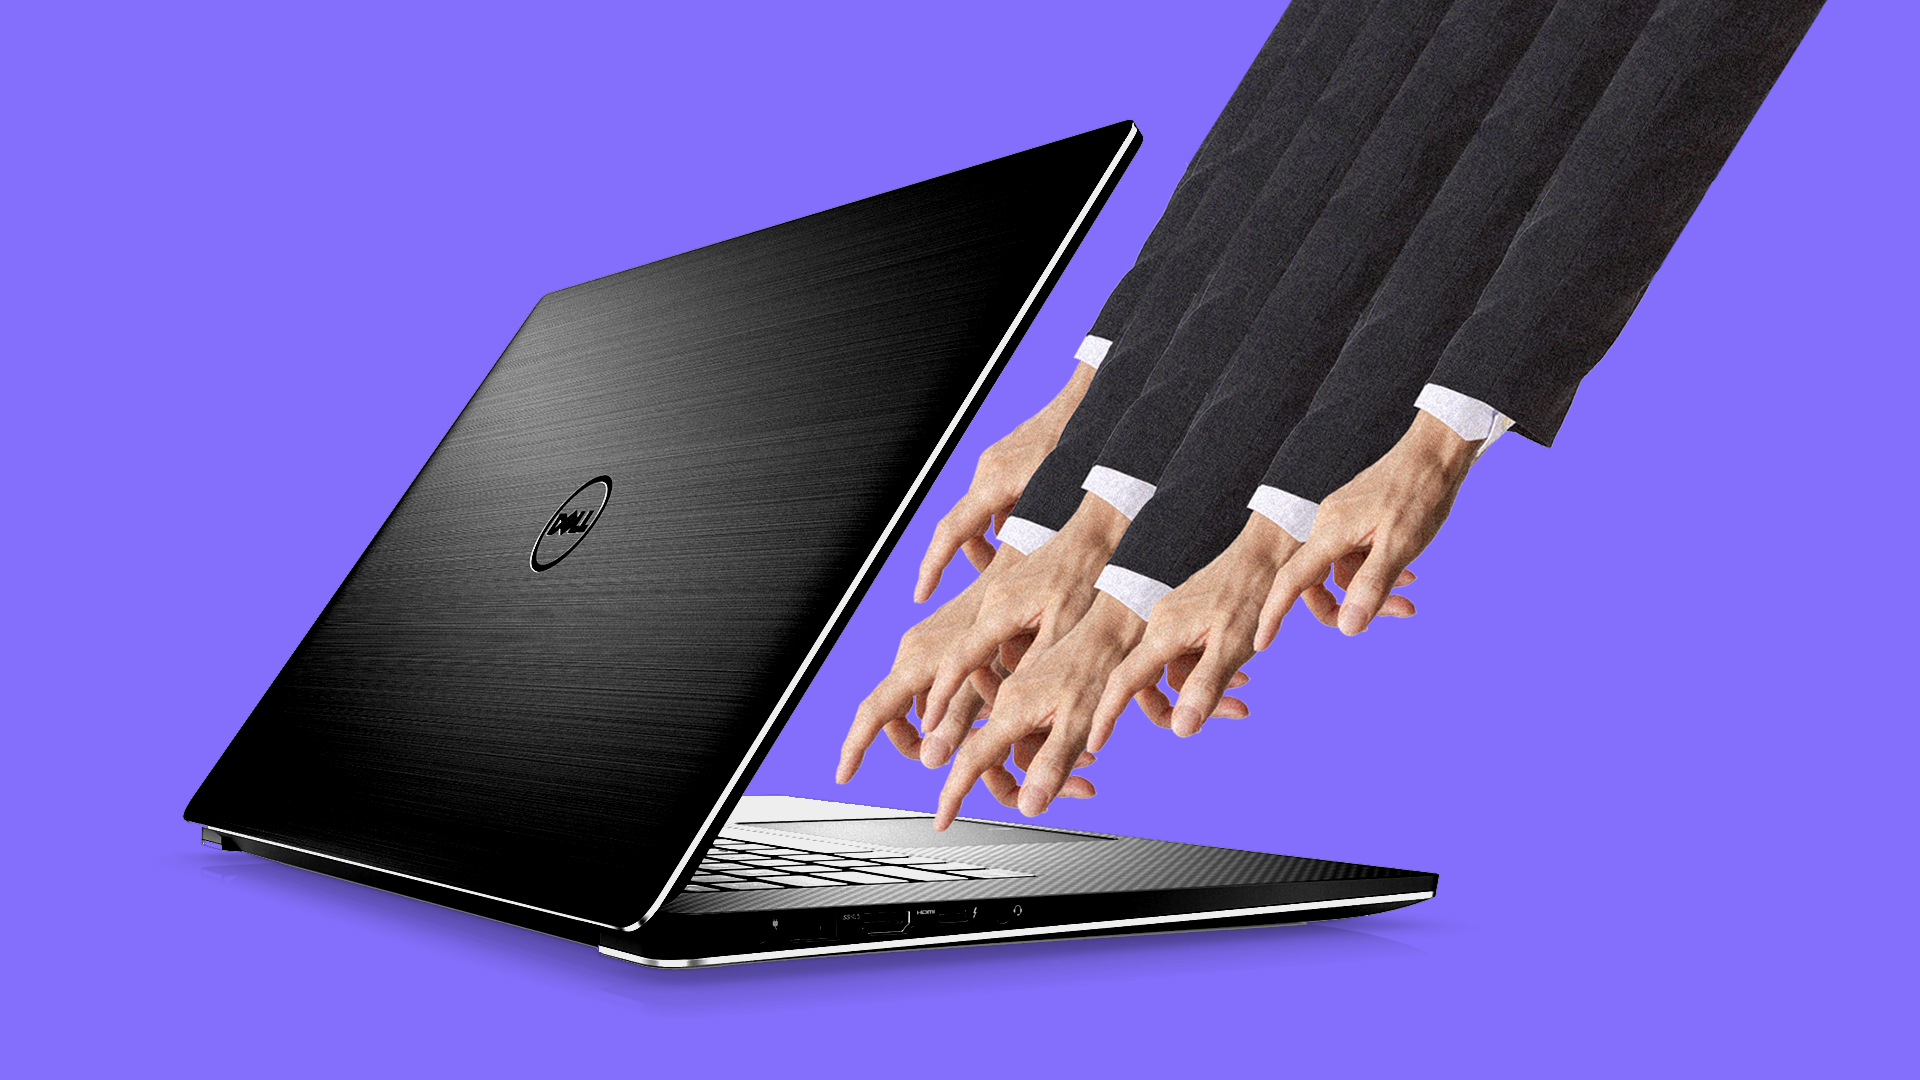 Lots of hands on a Dell laptop